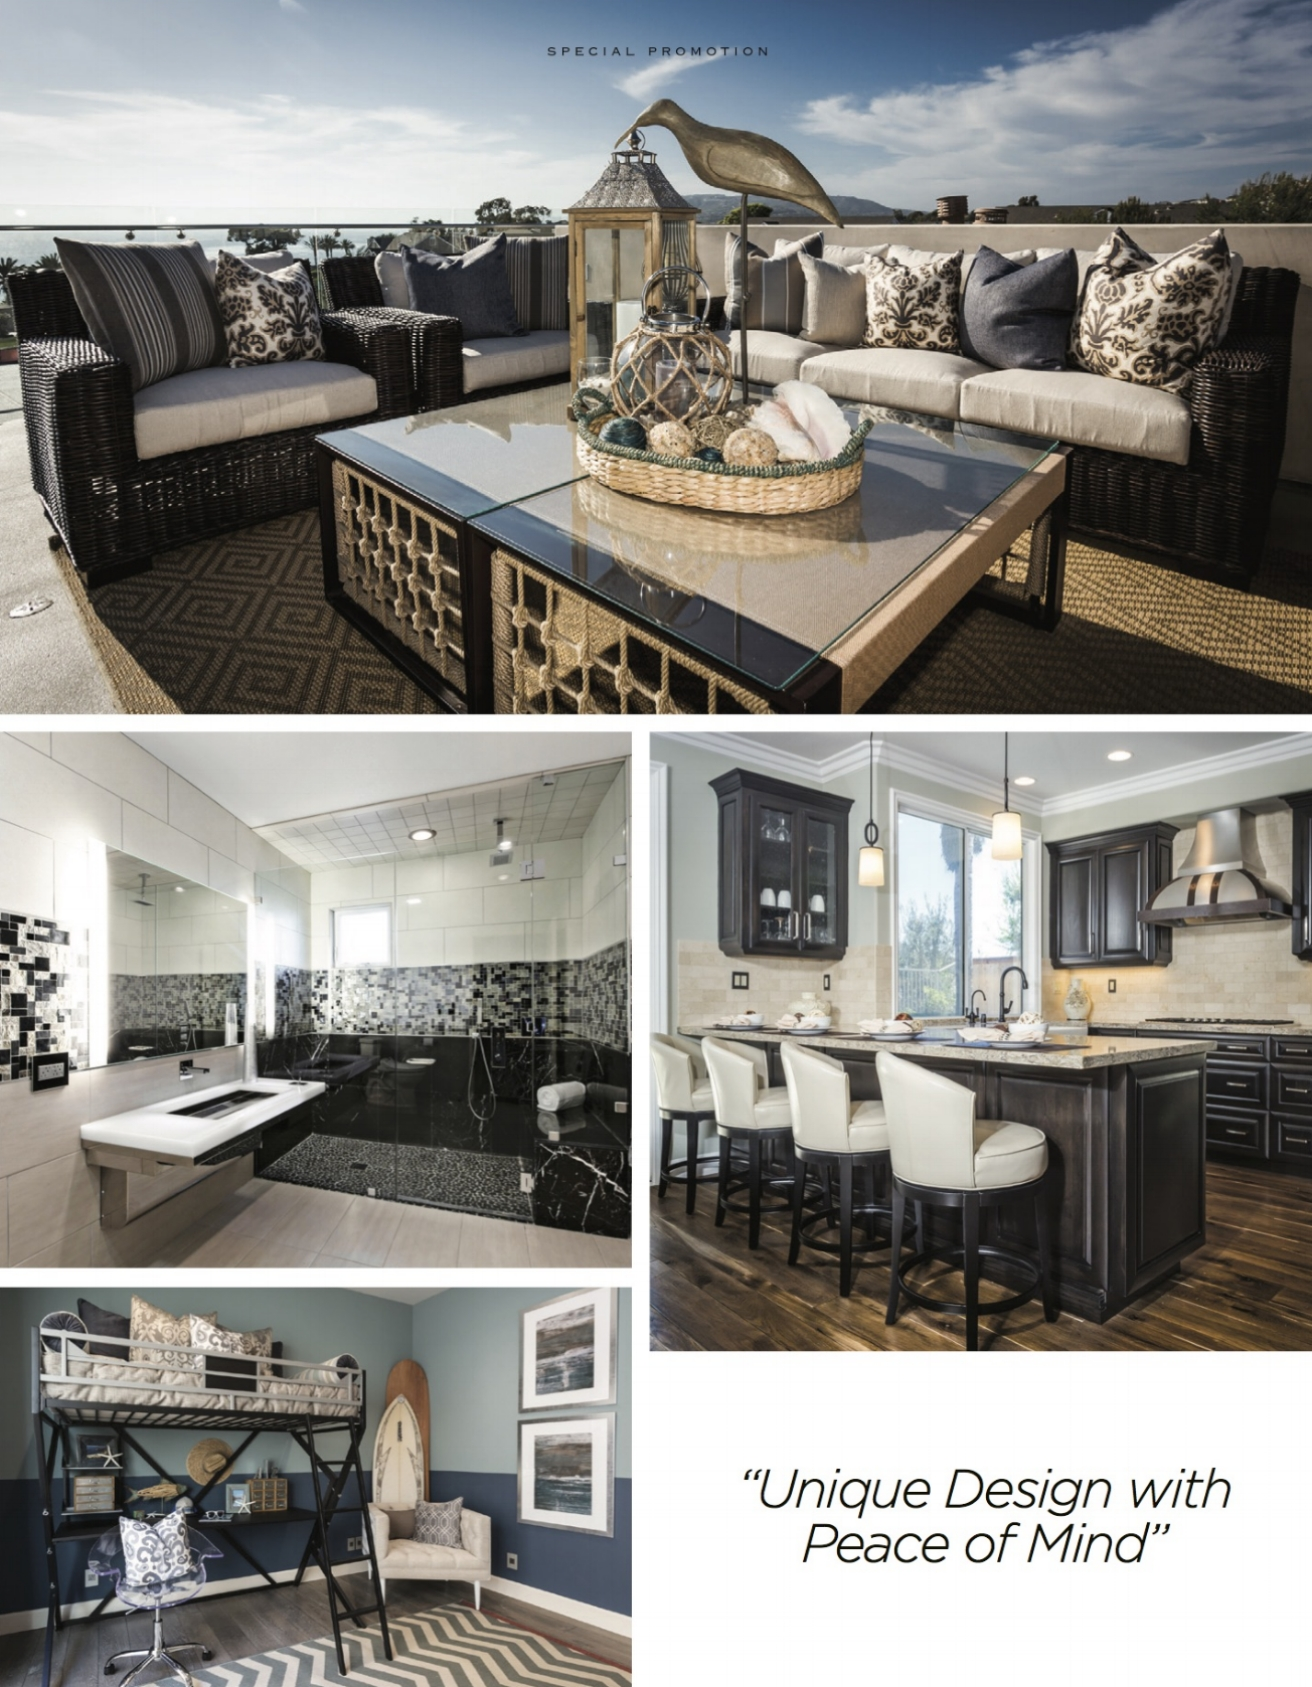 "A collection of 4 images showing some of Audra's remodels with a quote from her ""unique design with peace of mind"". Images show a rooftop deck design with outdoor furniture, a luxury black & white bathroom, a high end kitchen with four counterstools, and a blue bedroom with a surfboard designed specifically for a teen boy."